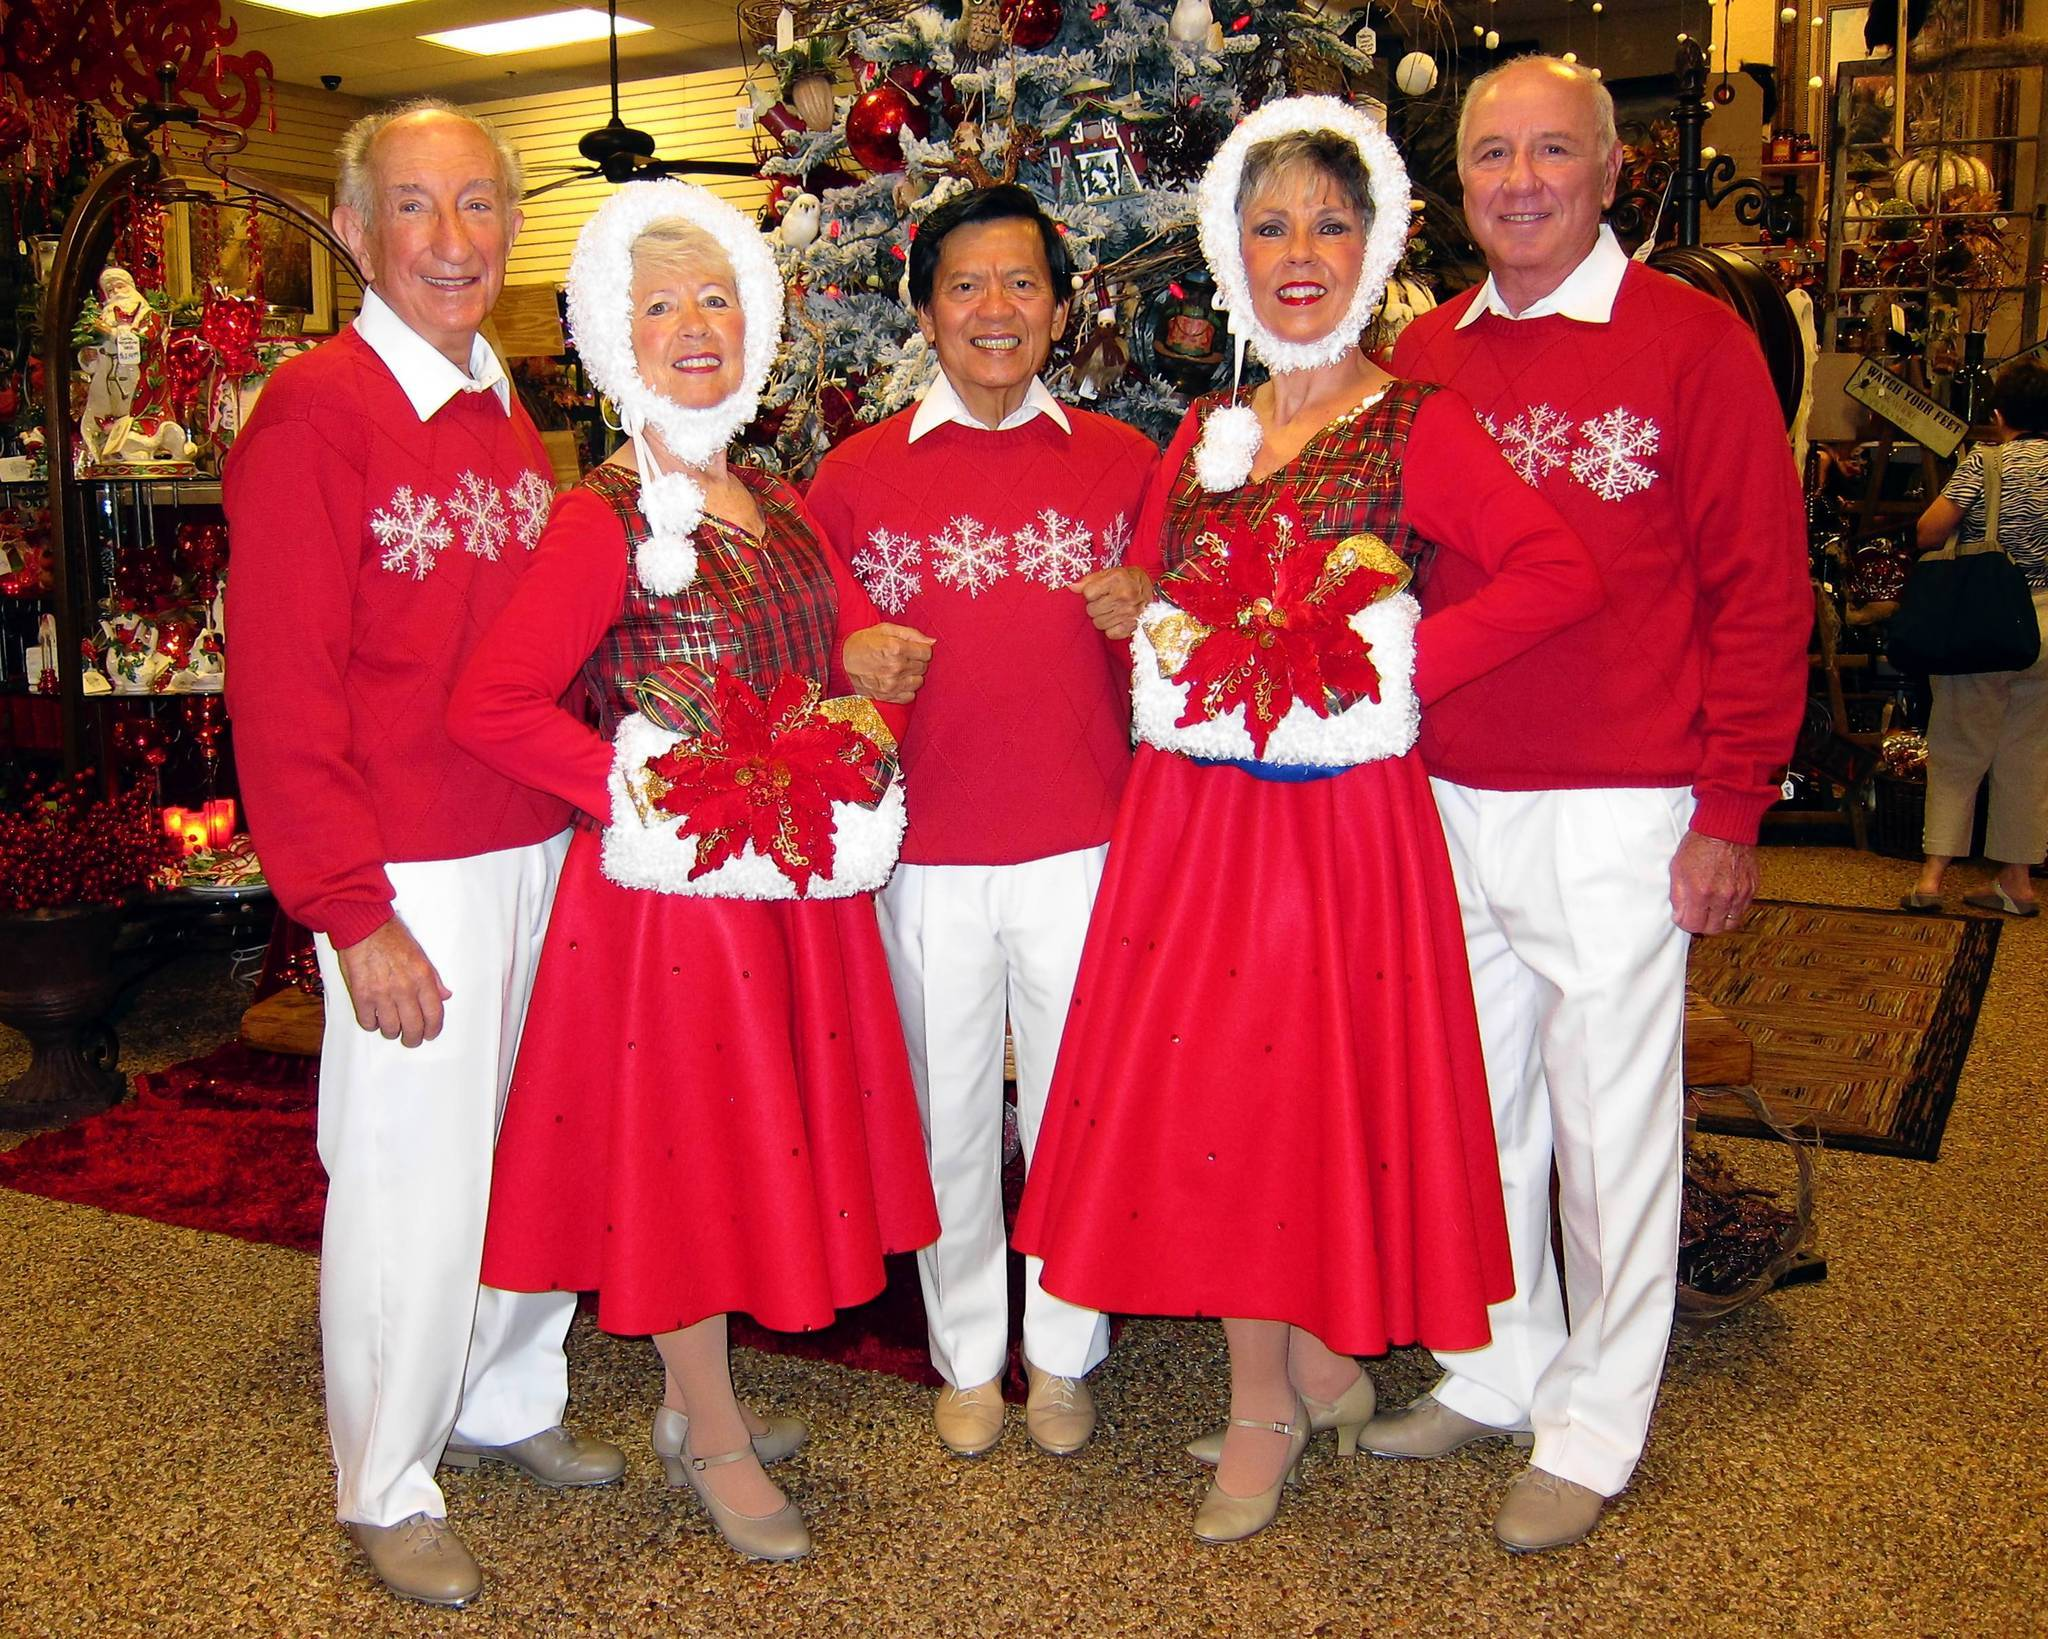 White Christmas The Villages: Just in time for the holidays — \'White ...